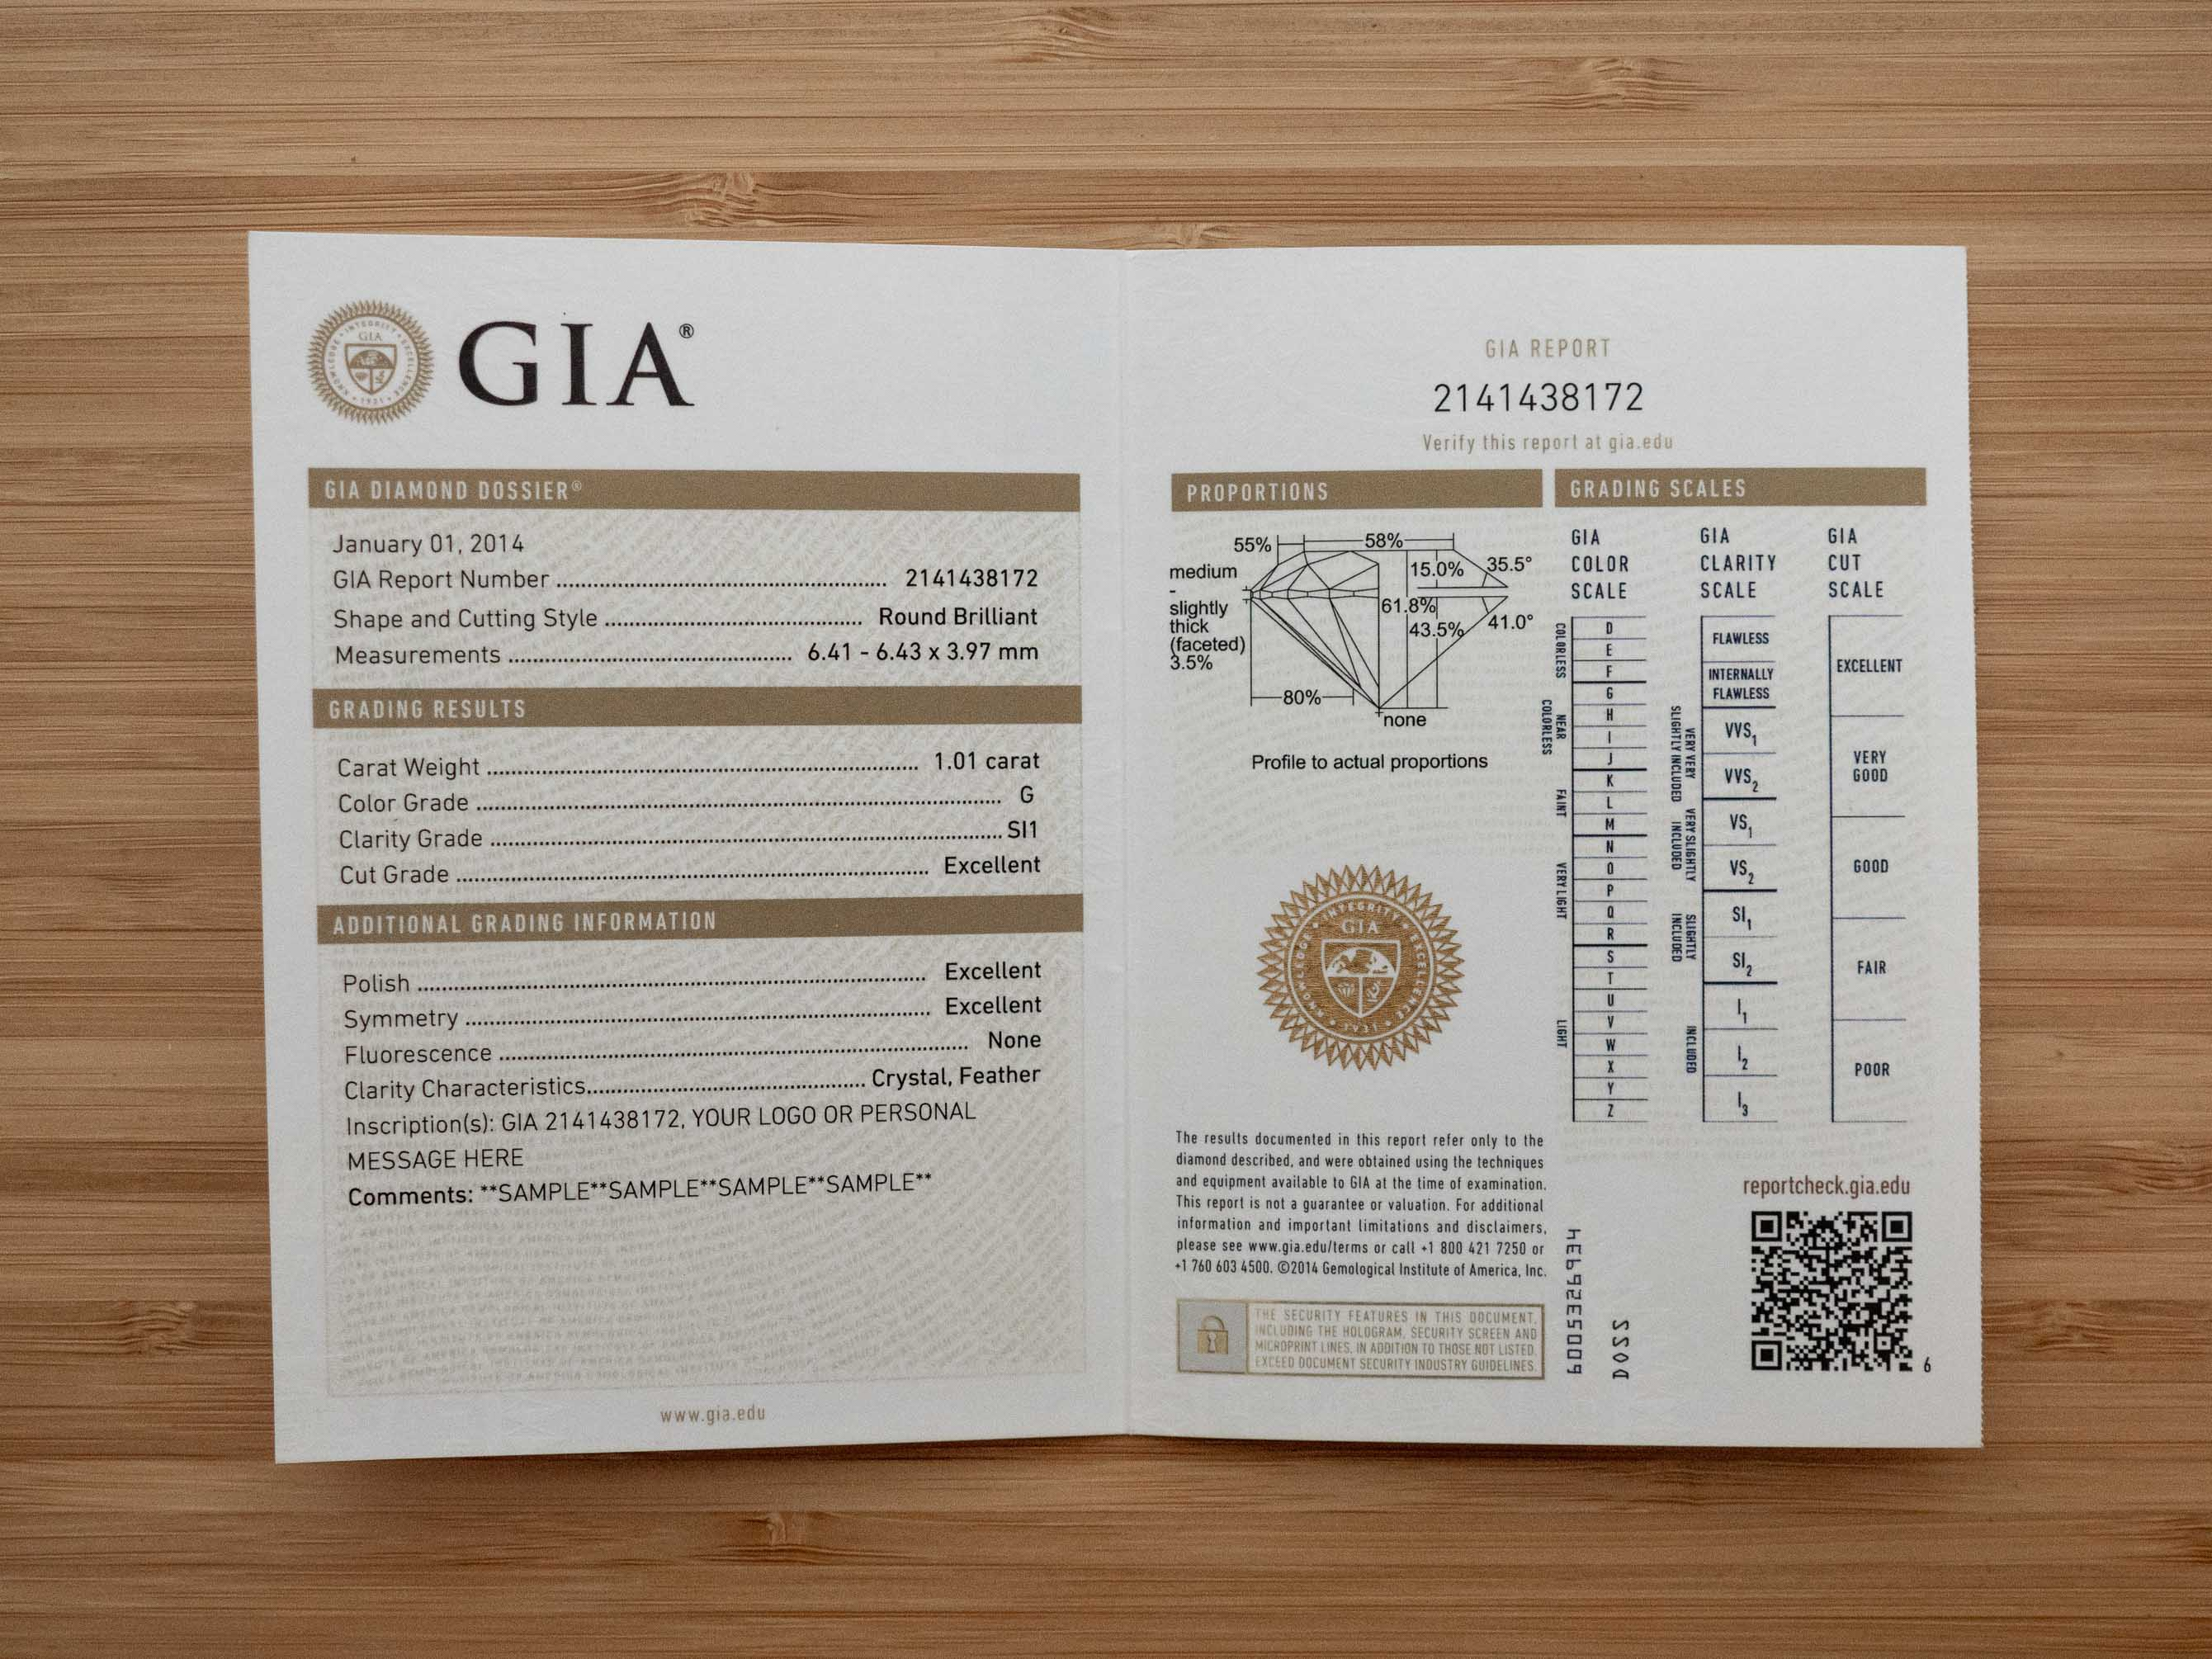 GIA Diamond Grading Report with main components of the report